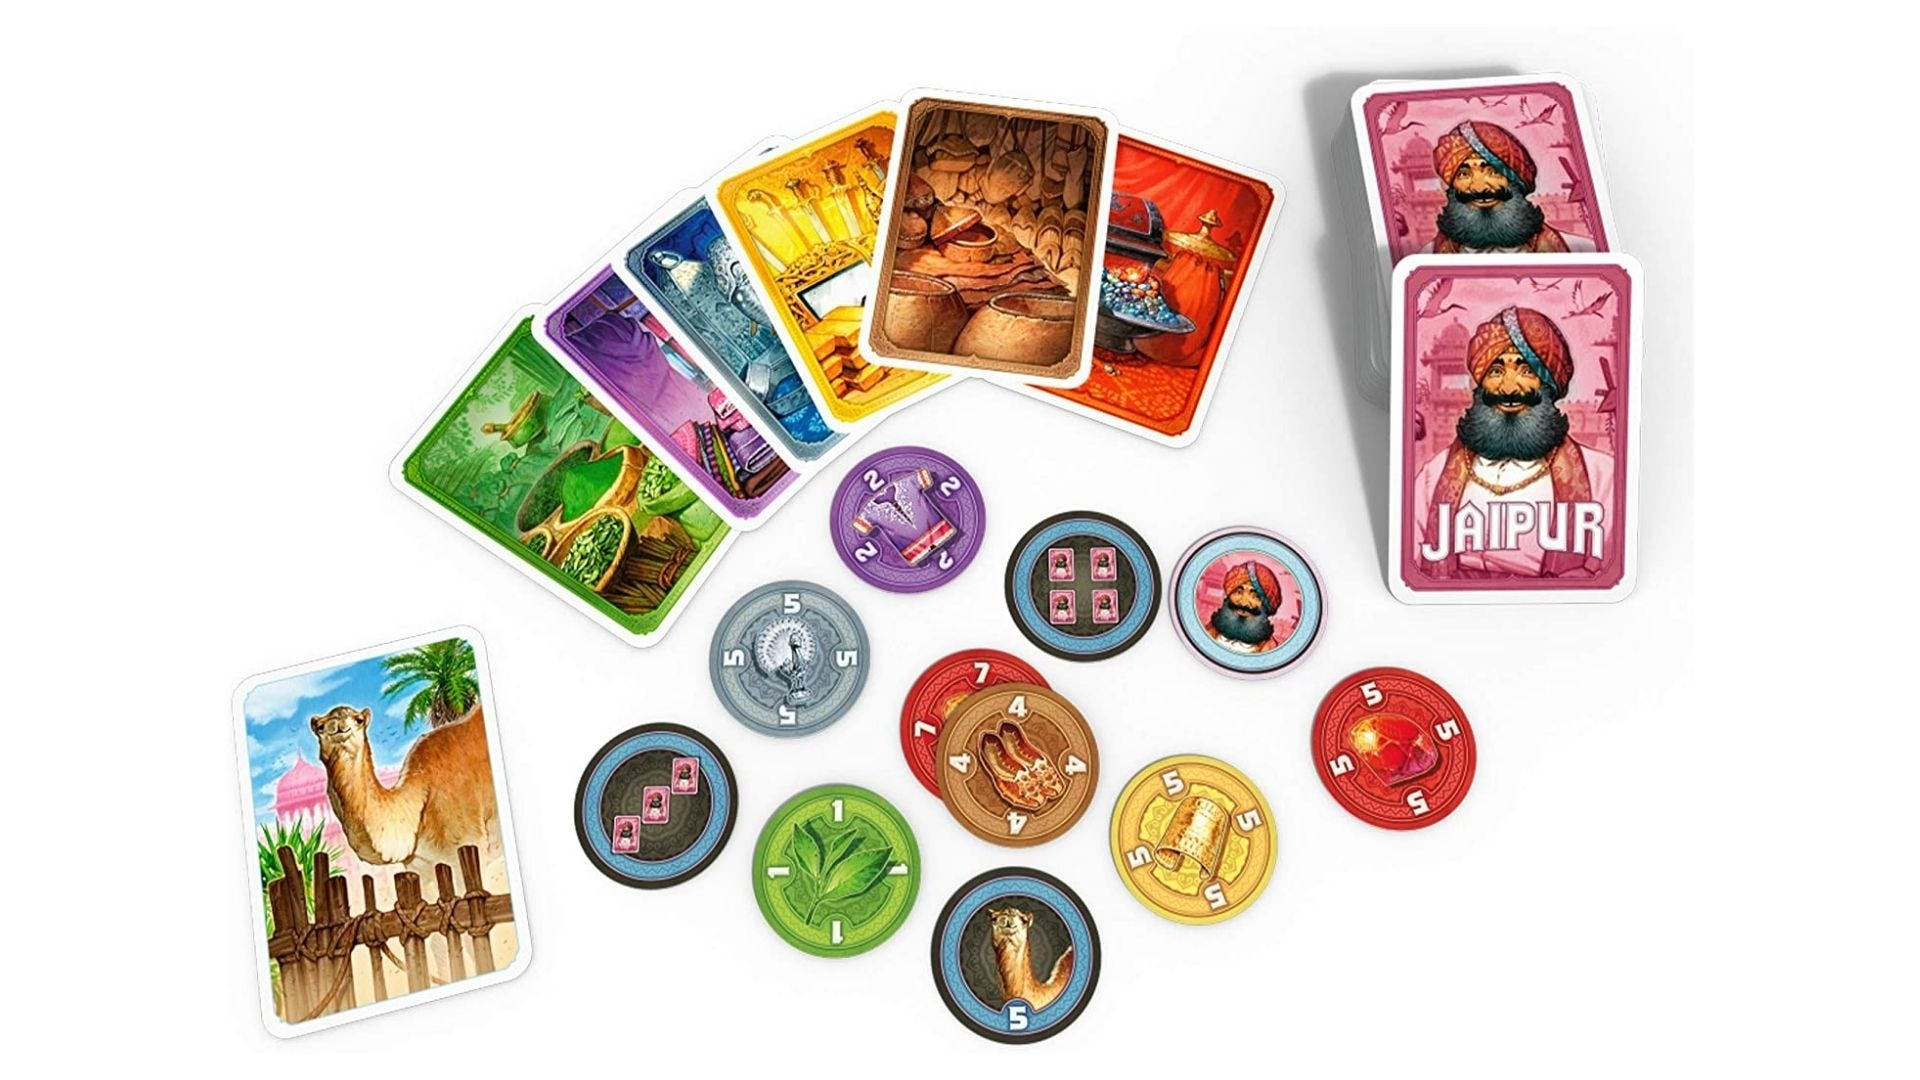 Jaipur Board Strategy Game for Adults and Kids